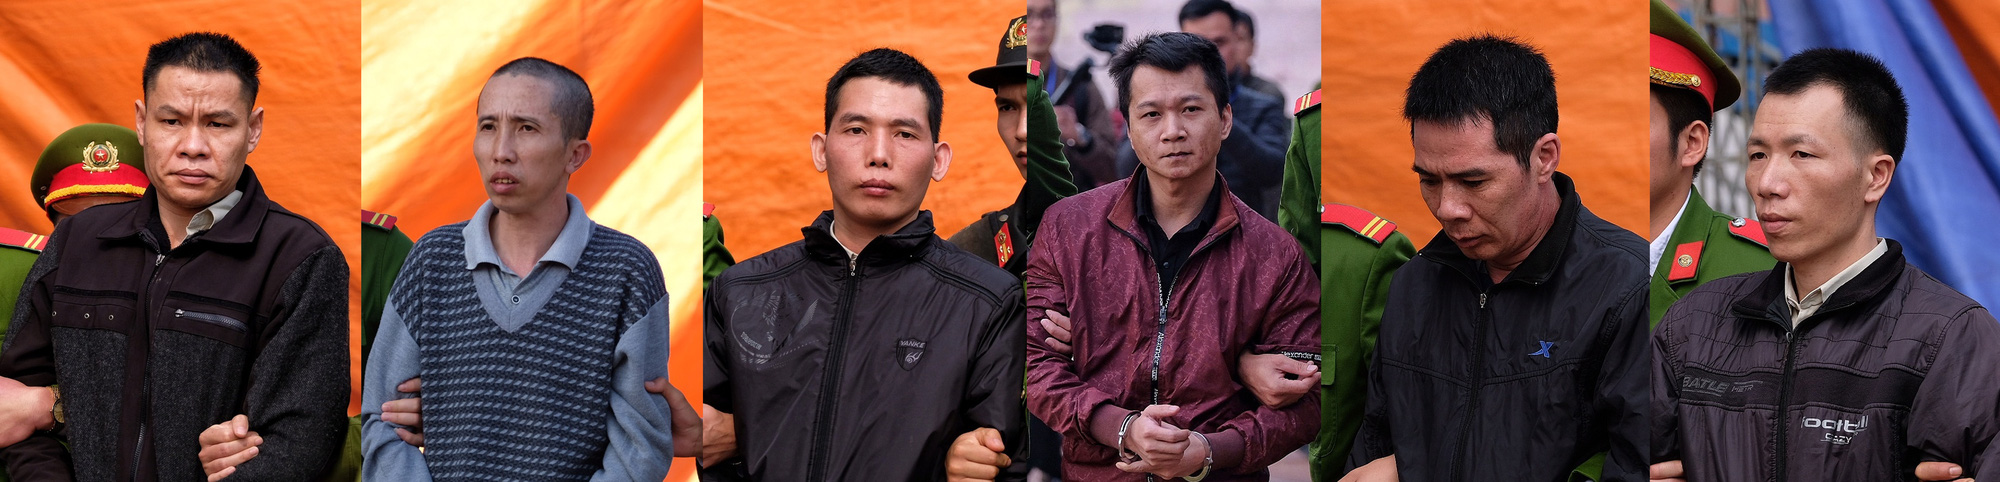 6 men sentenced to death for kidnapping, gang raping, murdering Vietnamese college student